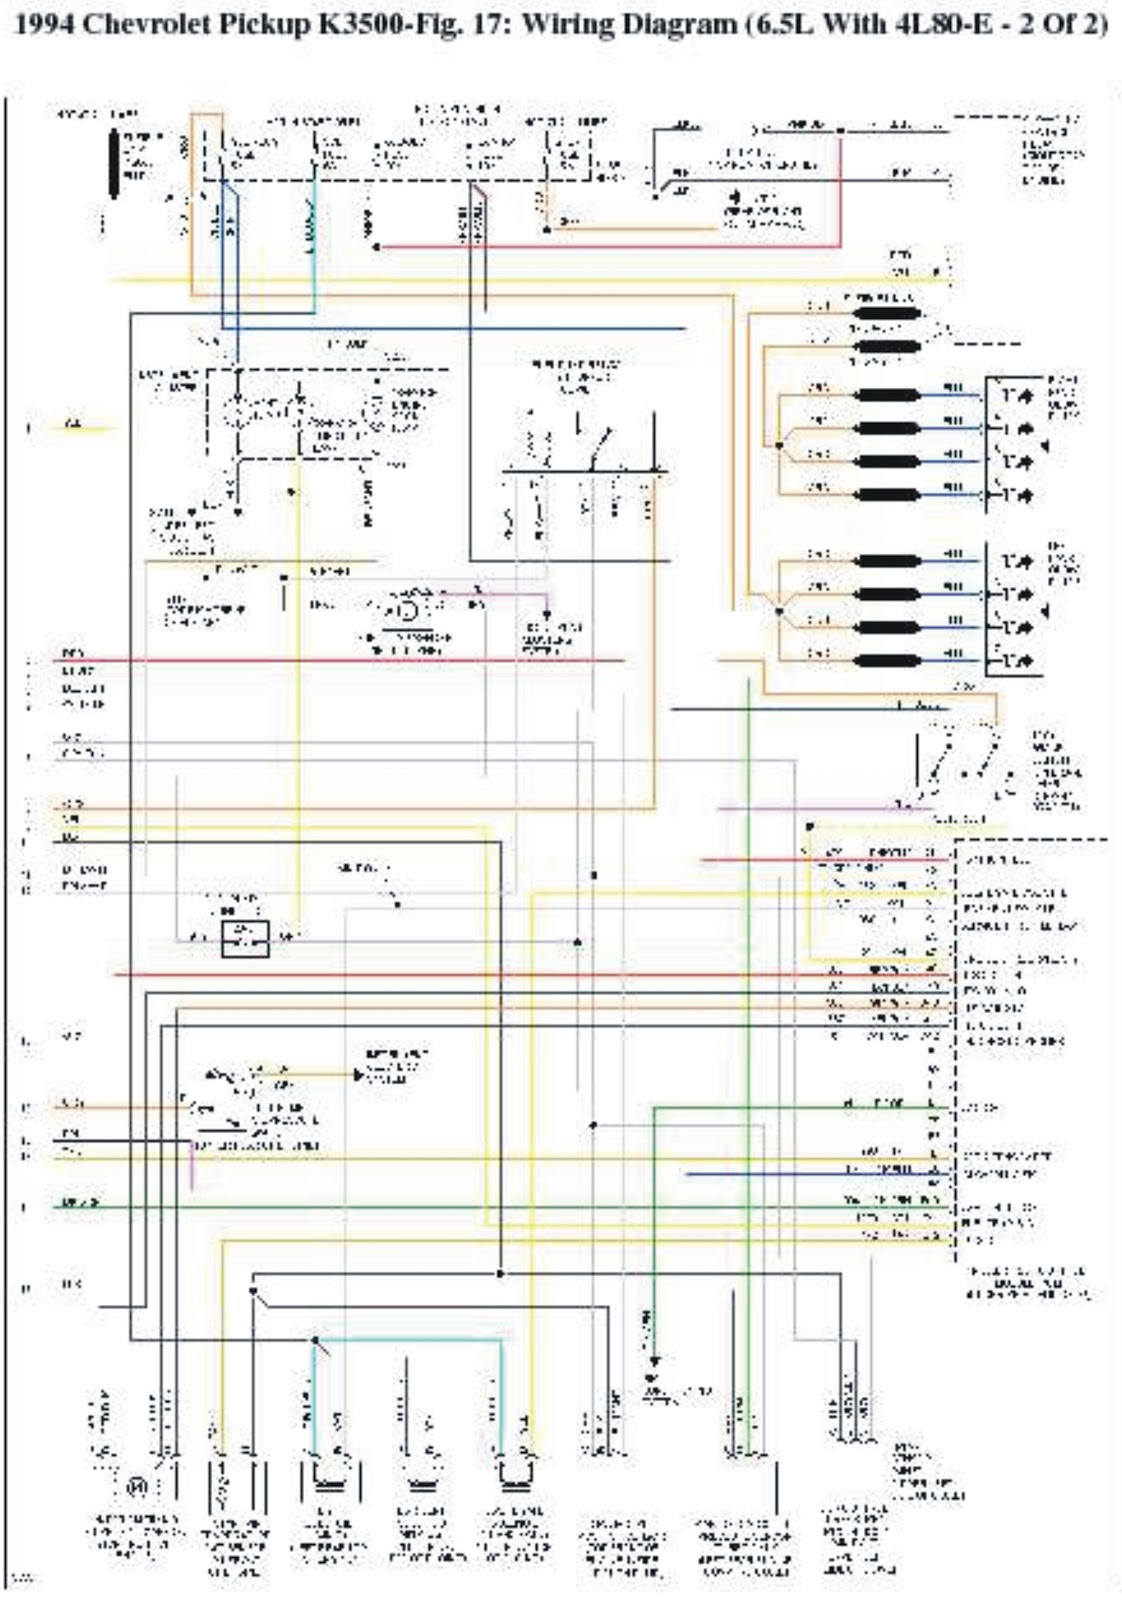 1994 Chevrolet PickUp K3500 Wiring Diagrams | Wiring